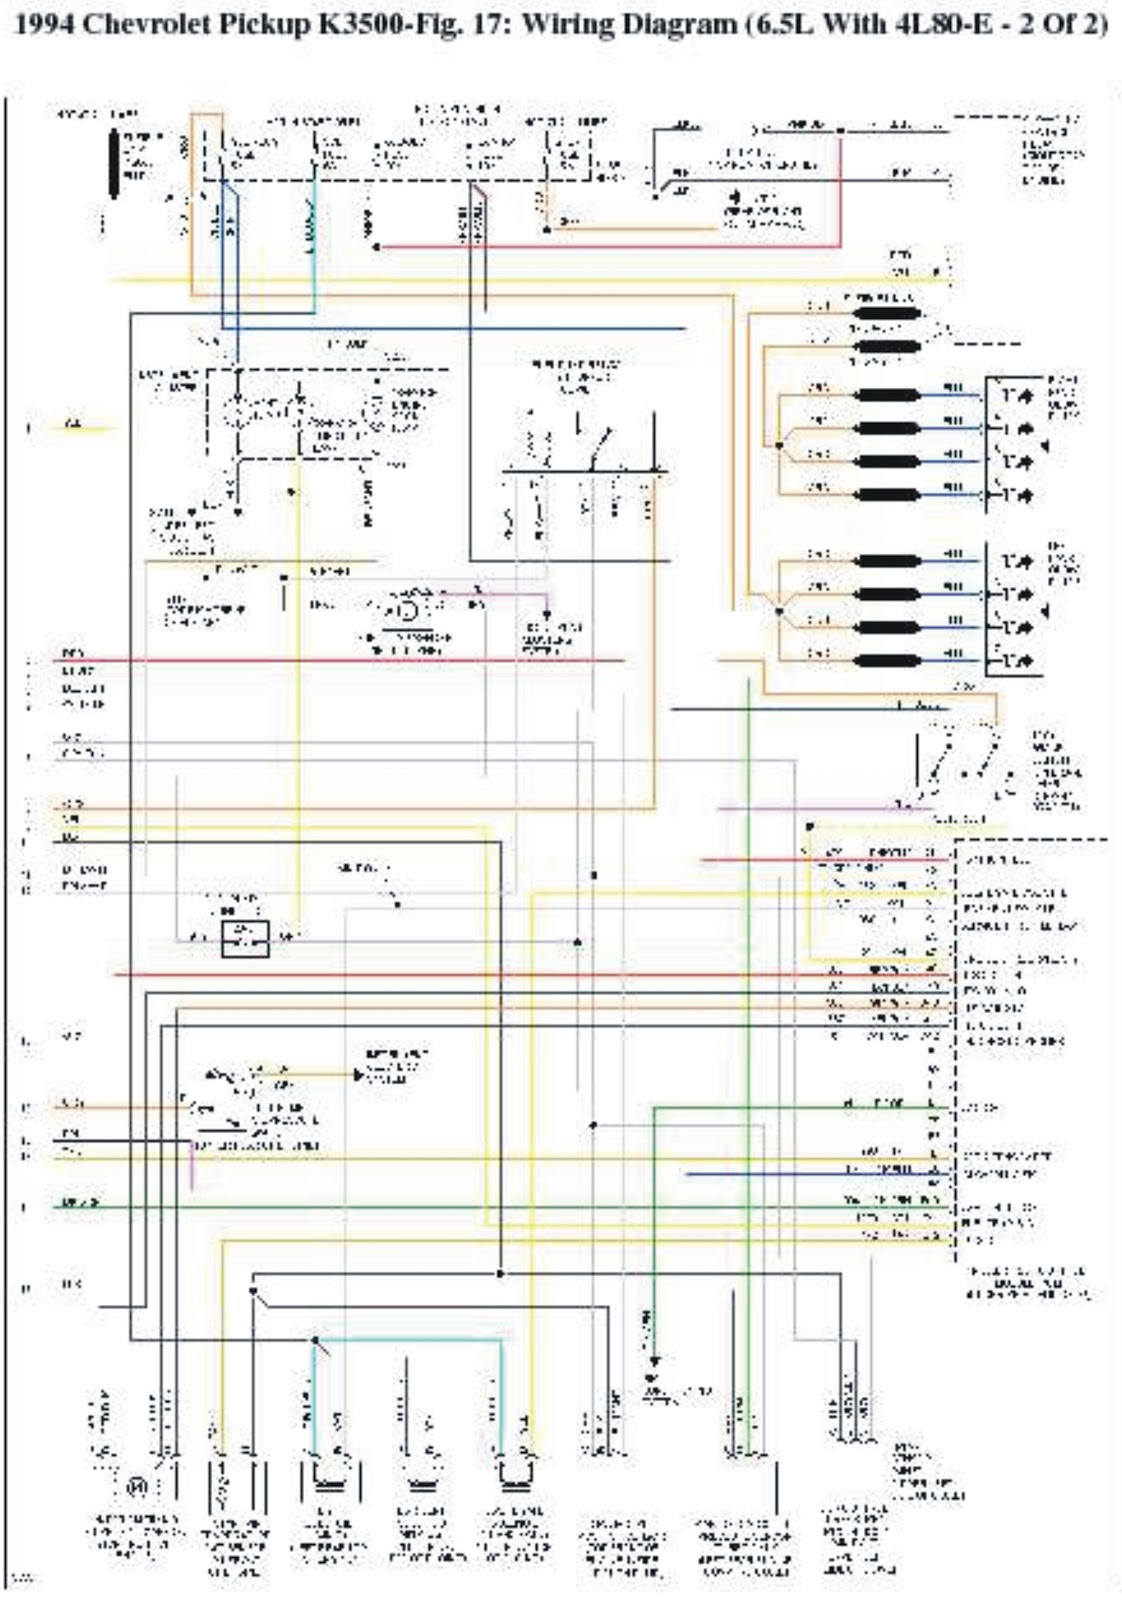 1994 Chevrolet PickUp K3500 Wiring Diagrams | Wiring